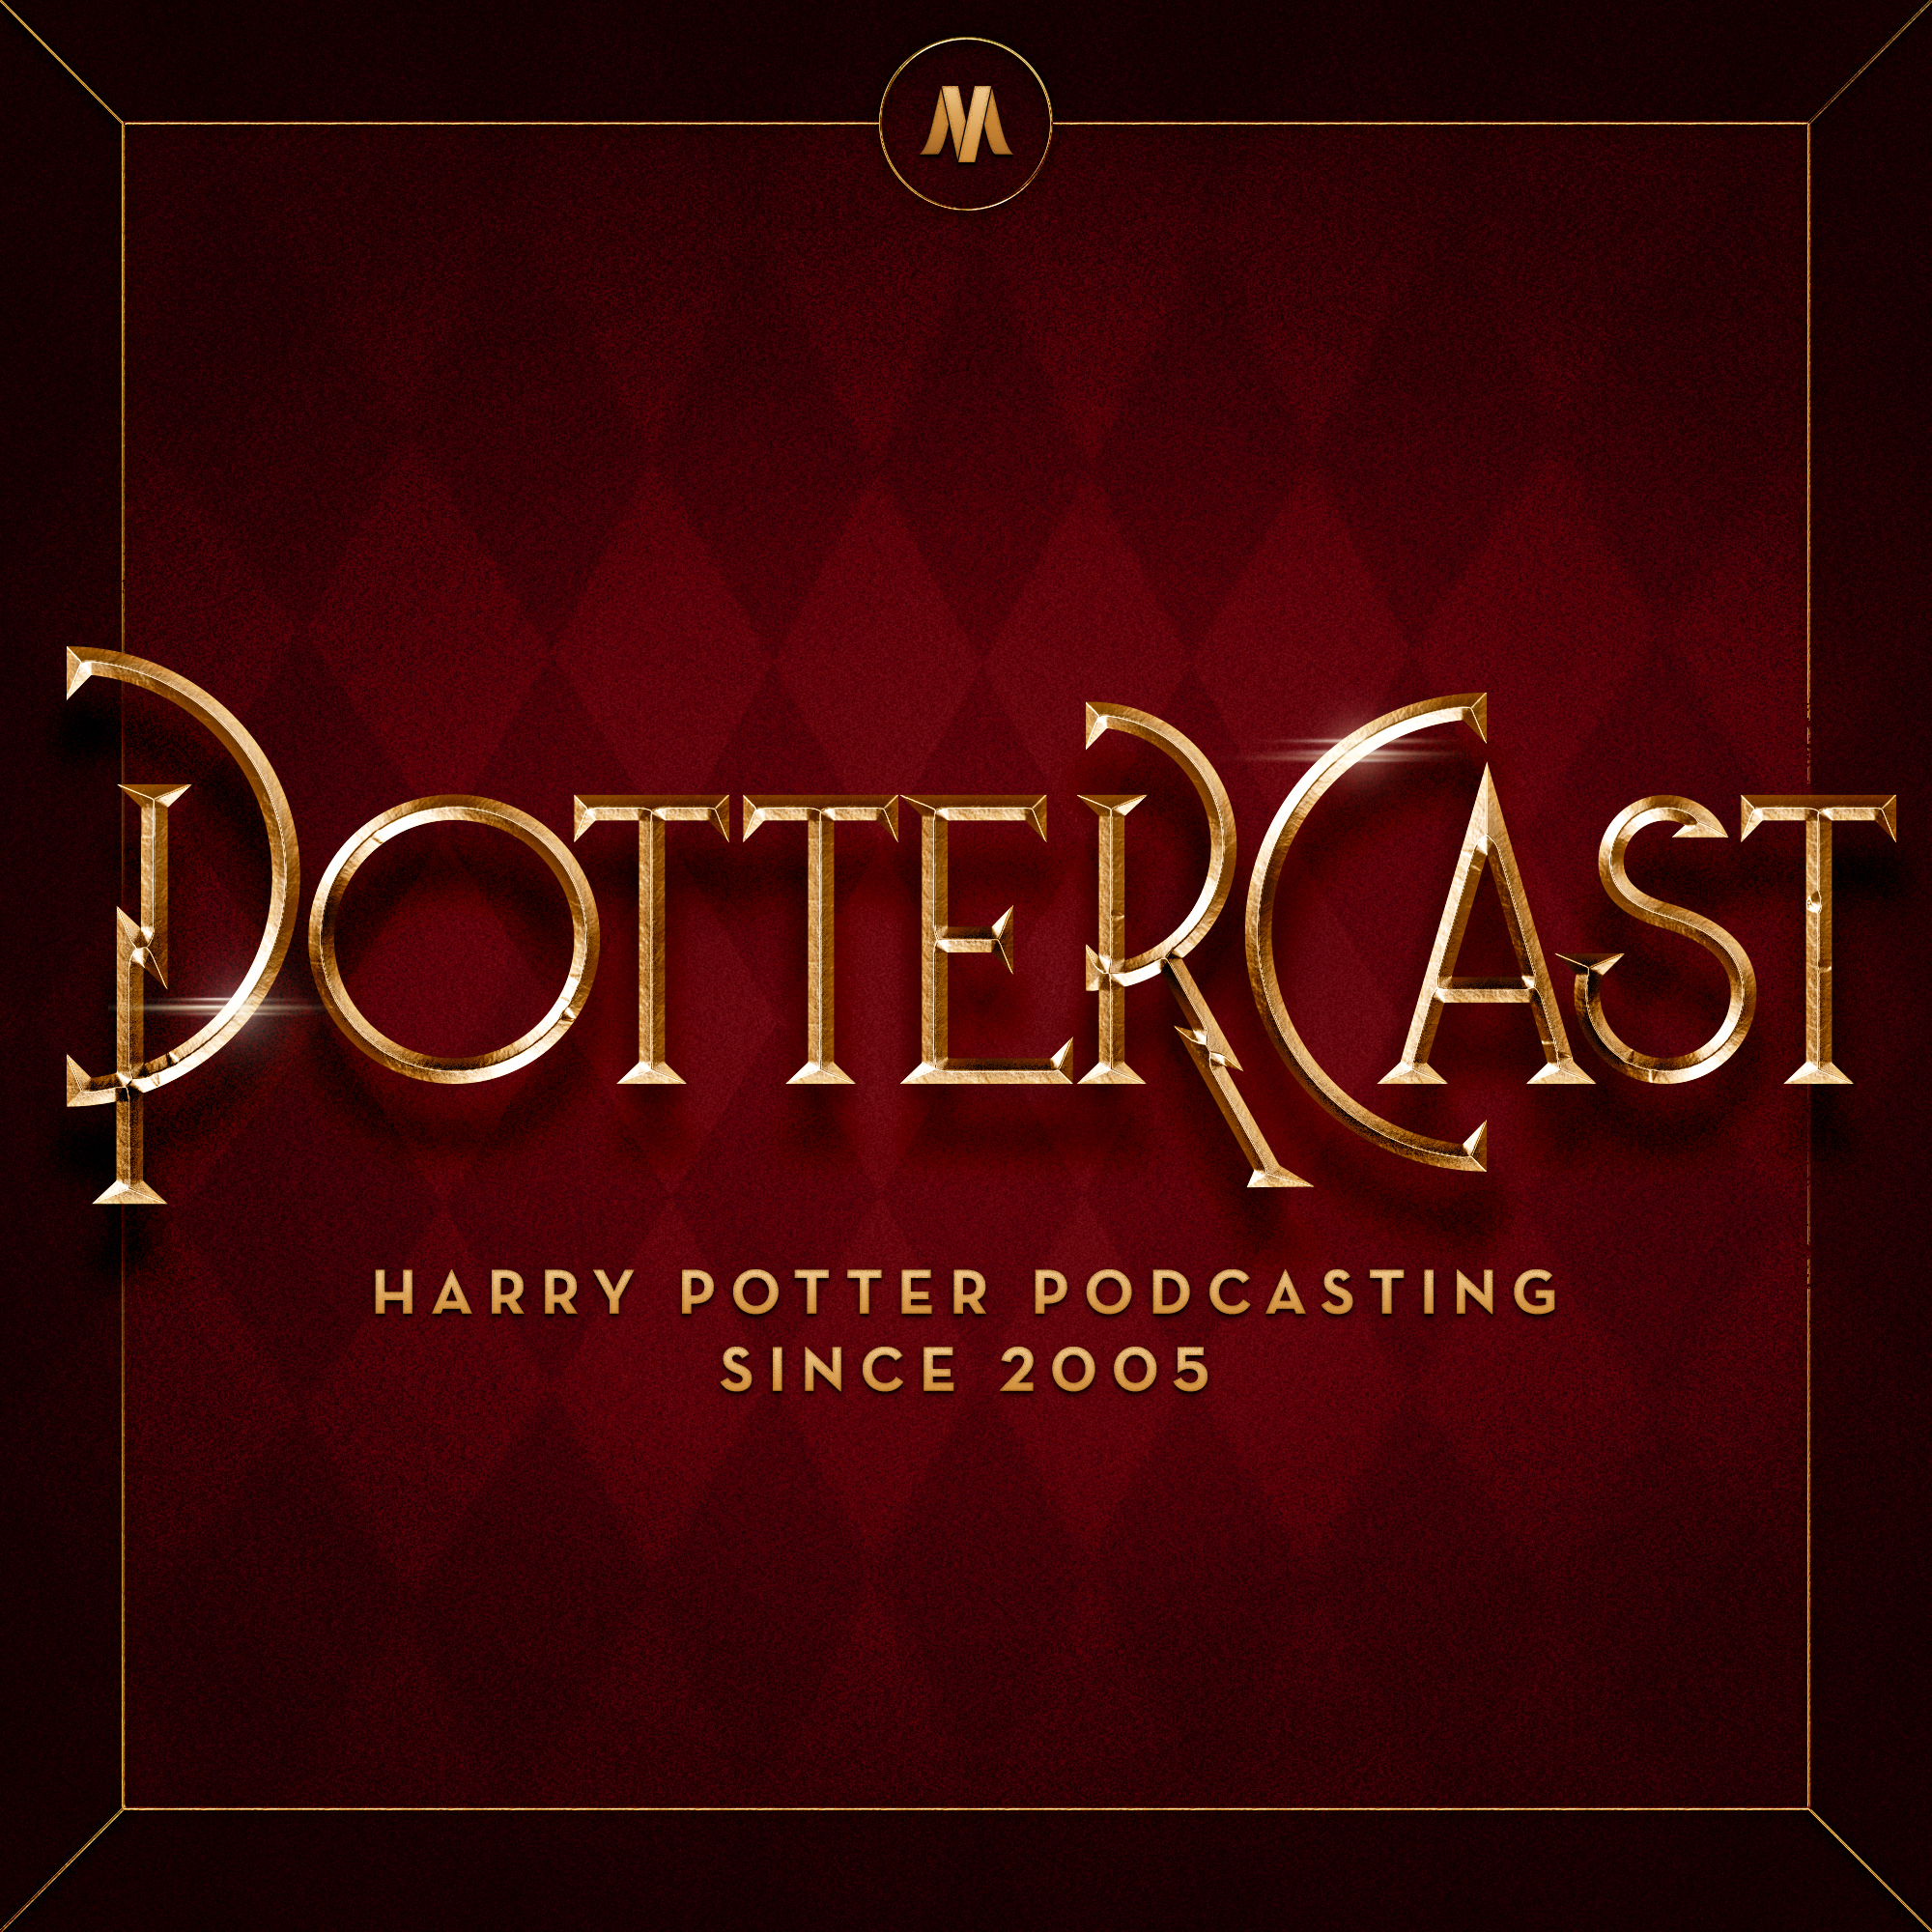 PotterCast: The Harry Potter podcast since 2005 show art